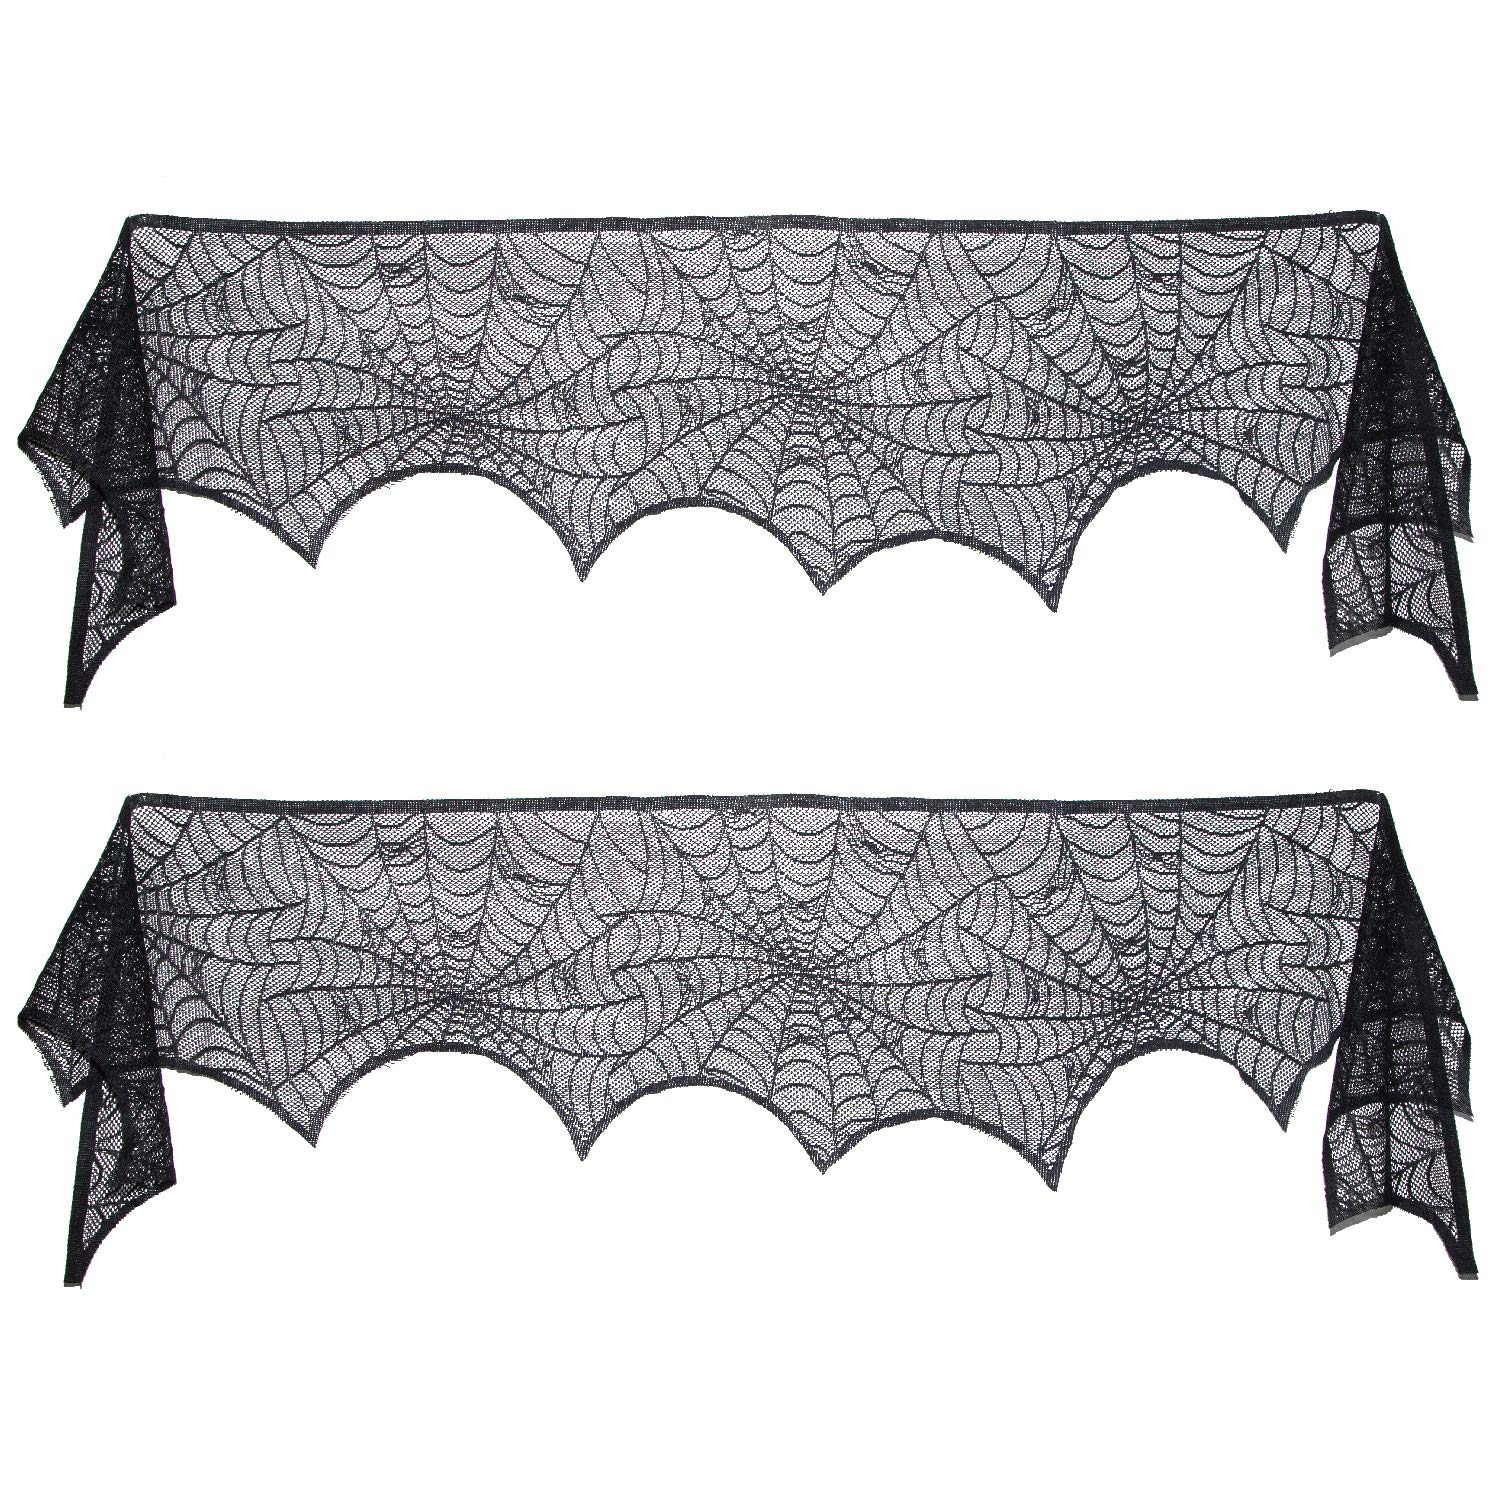 Scafiv 2 Pack Black Lace Spiderweb Cobweb Mantel Fireplace Scarf Cover Decoration Door Window Party Supplie, 18 x 96 Inch